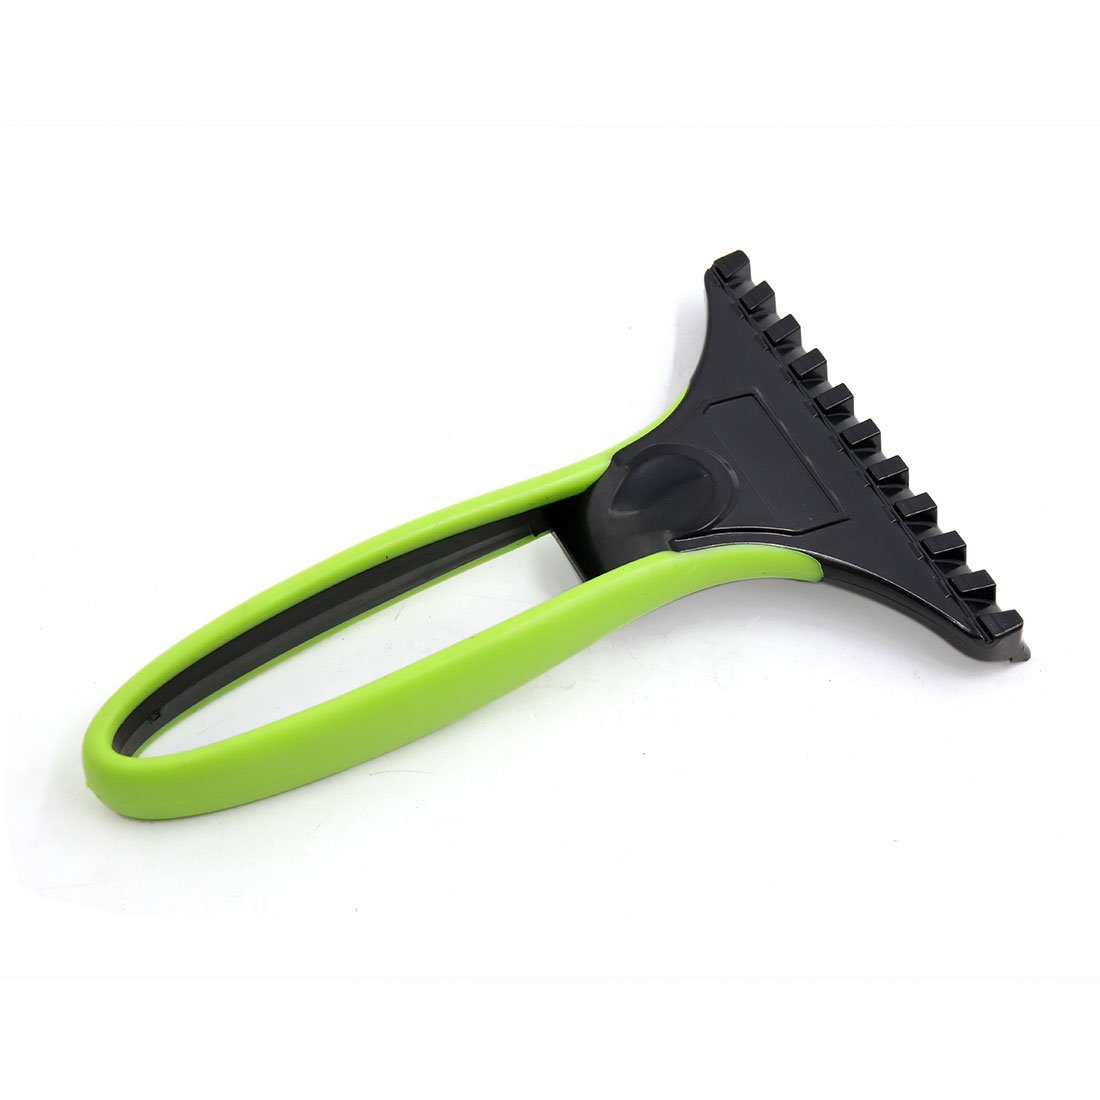 uxcell Green Black Portable Car Windshield Ice Snow Scraper Removal Cleaning Tool a17031000ux1691